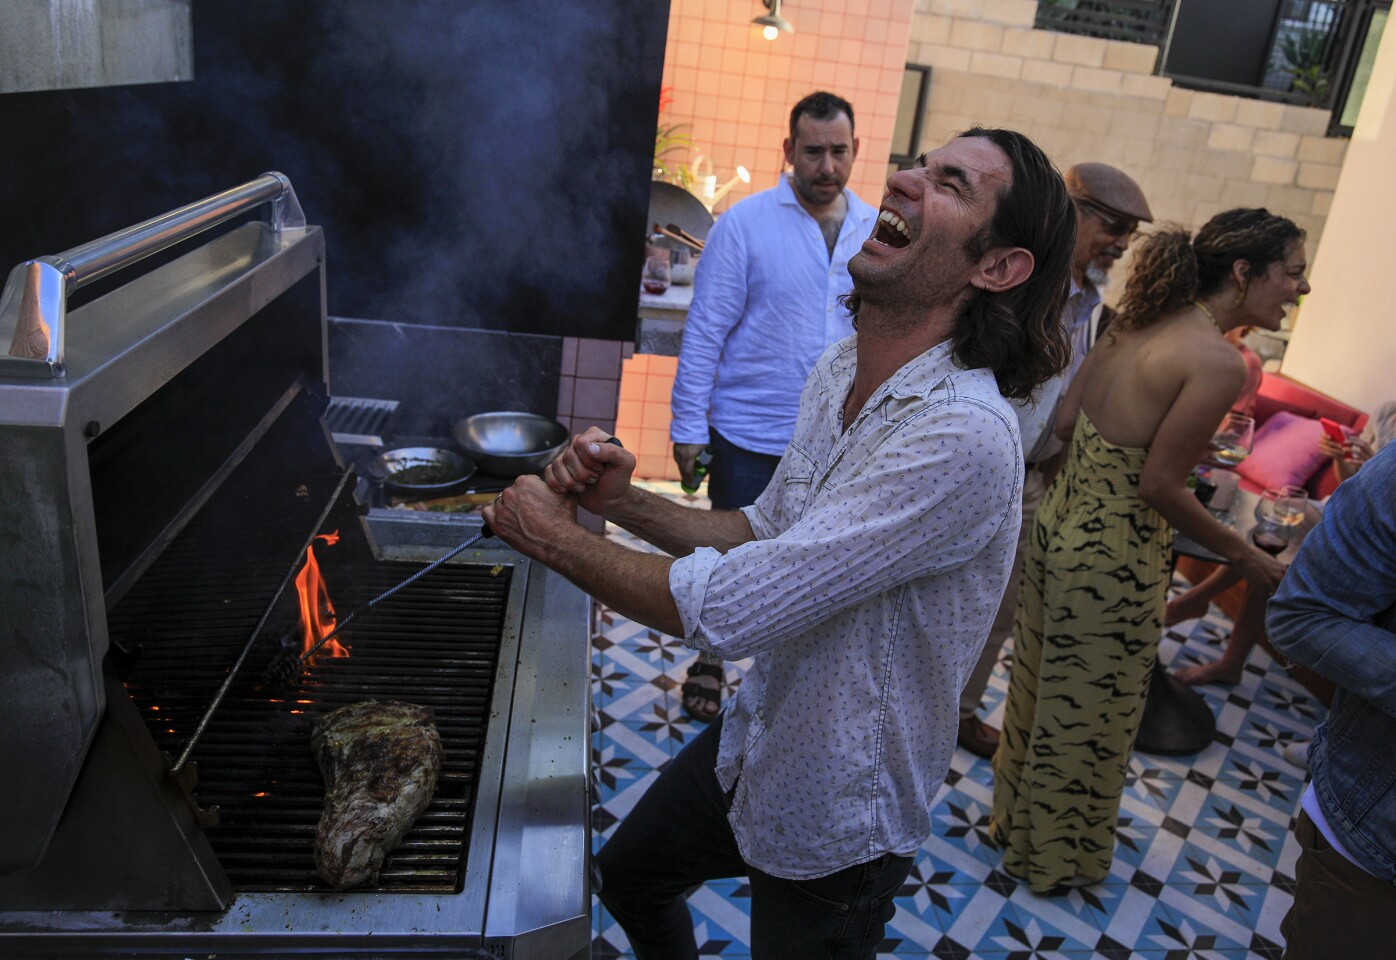 Photos: Sunday Dinner for 30+ in Silver Lake